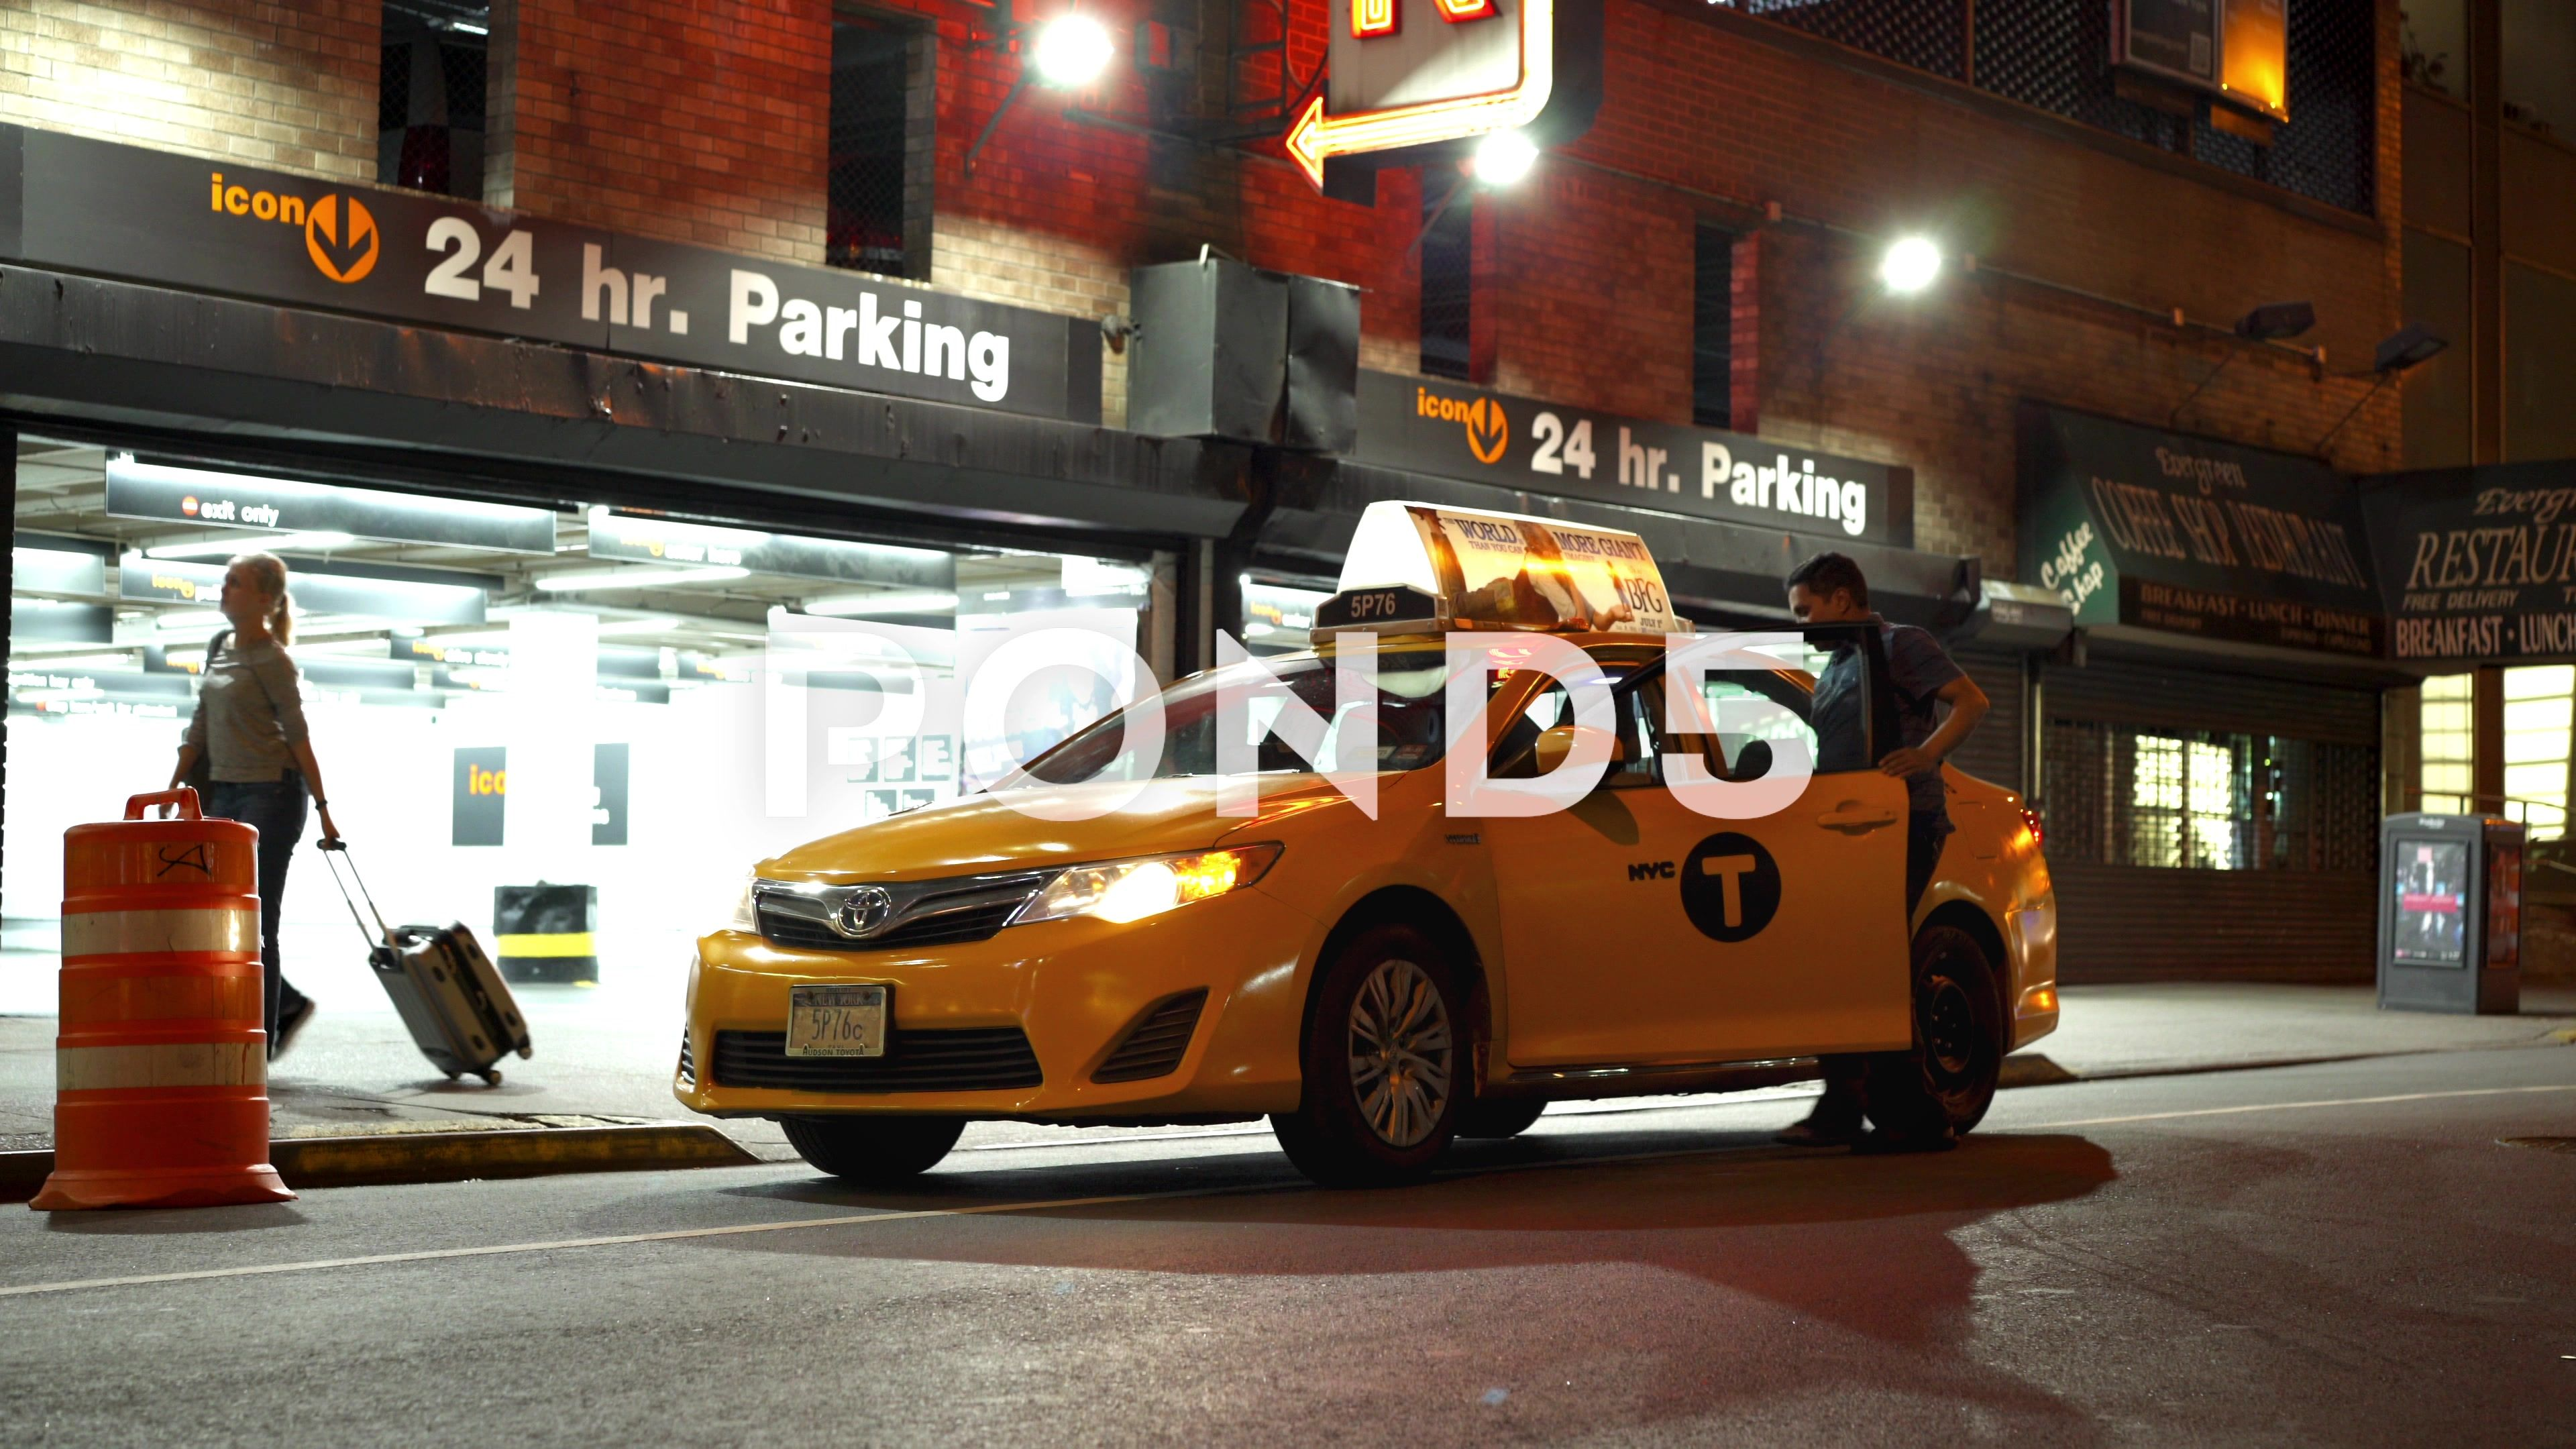 Taxi Stopped In Front Of Parking Garage In New York City 4k Stock Footage Front Parking Taxi Stopped Parking Garage New York City Taxi